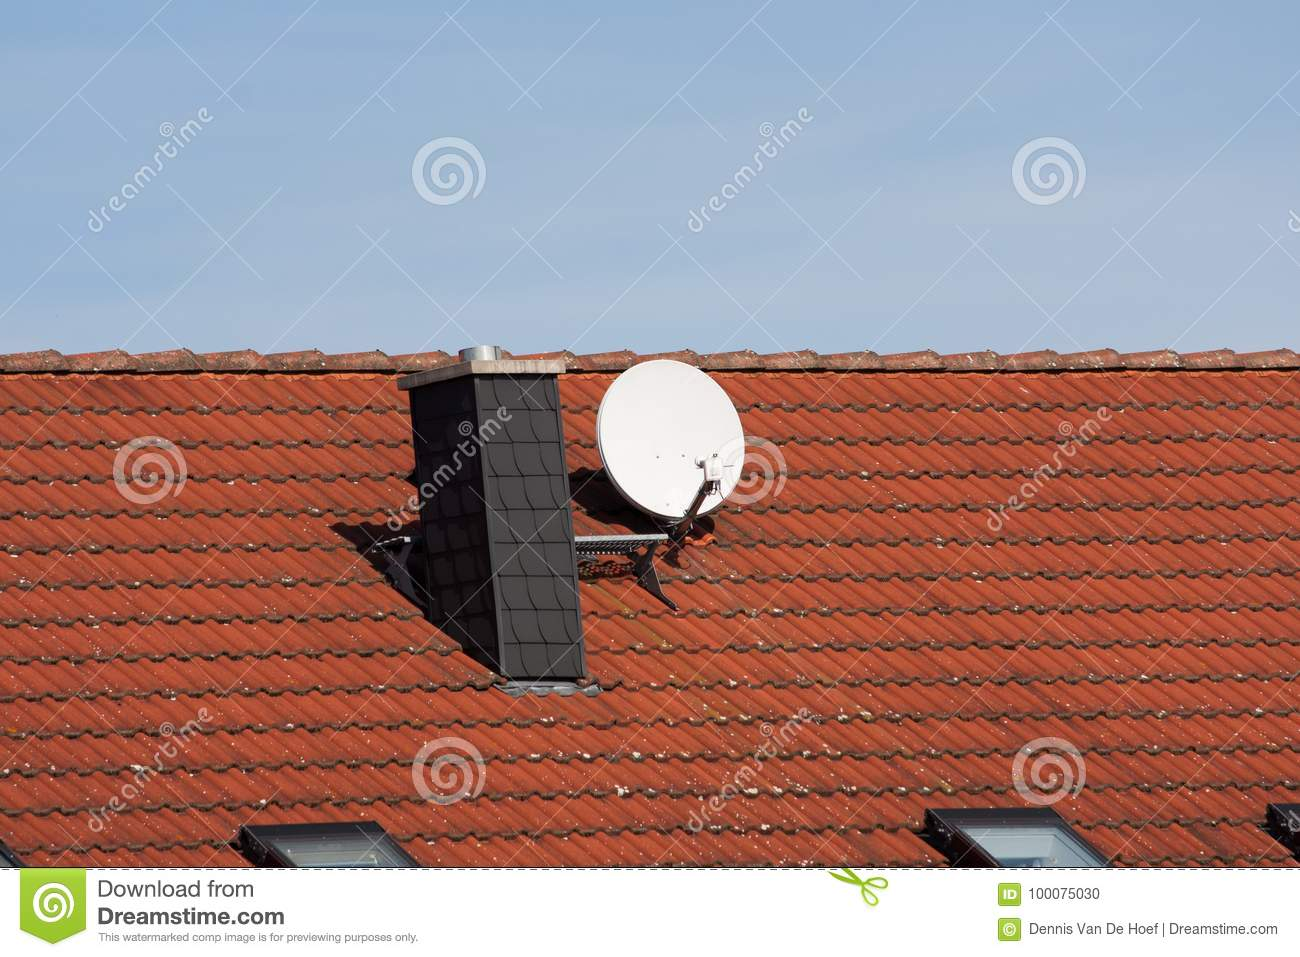 Satellite dish on a roof.